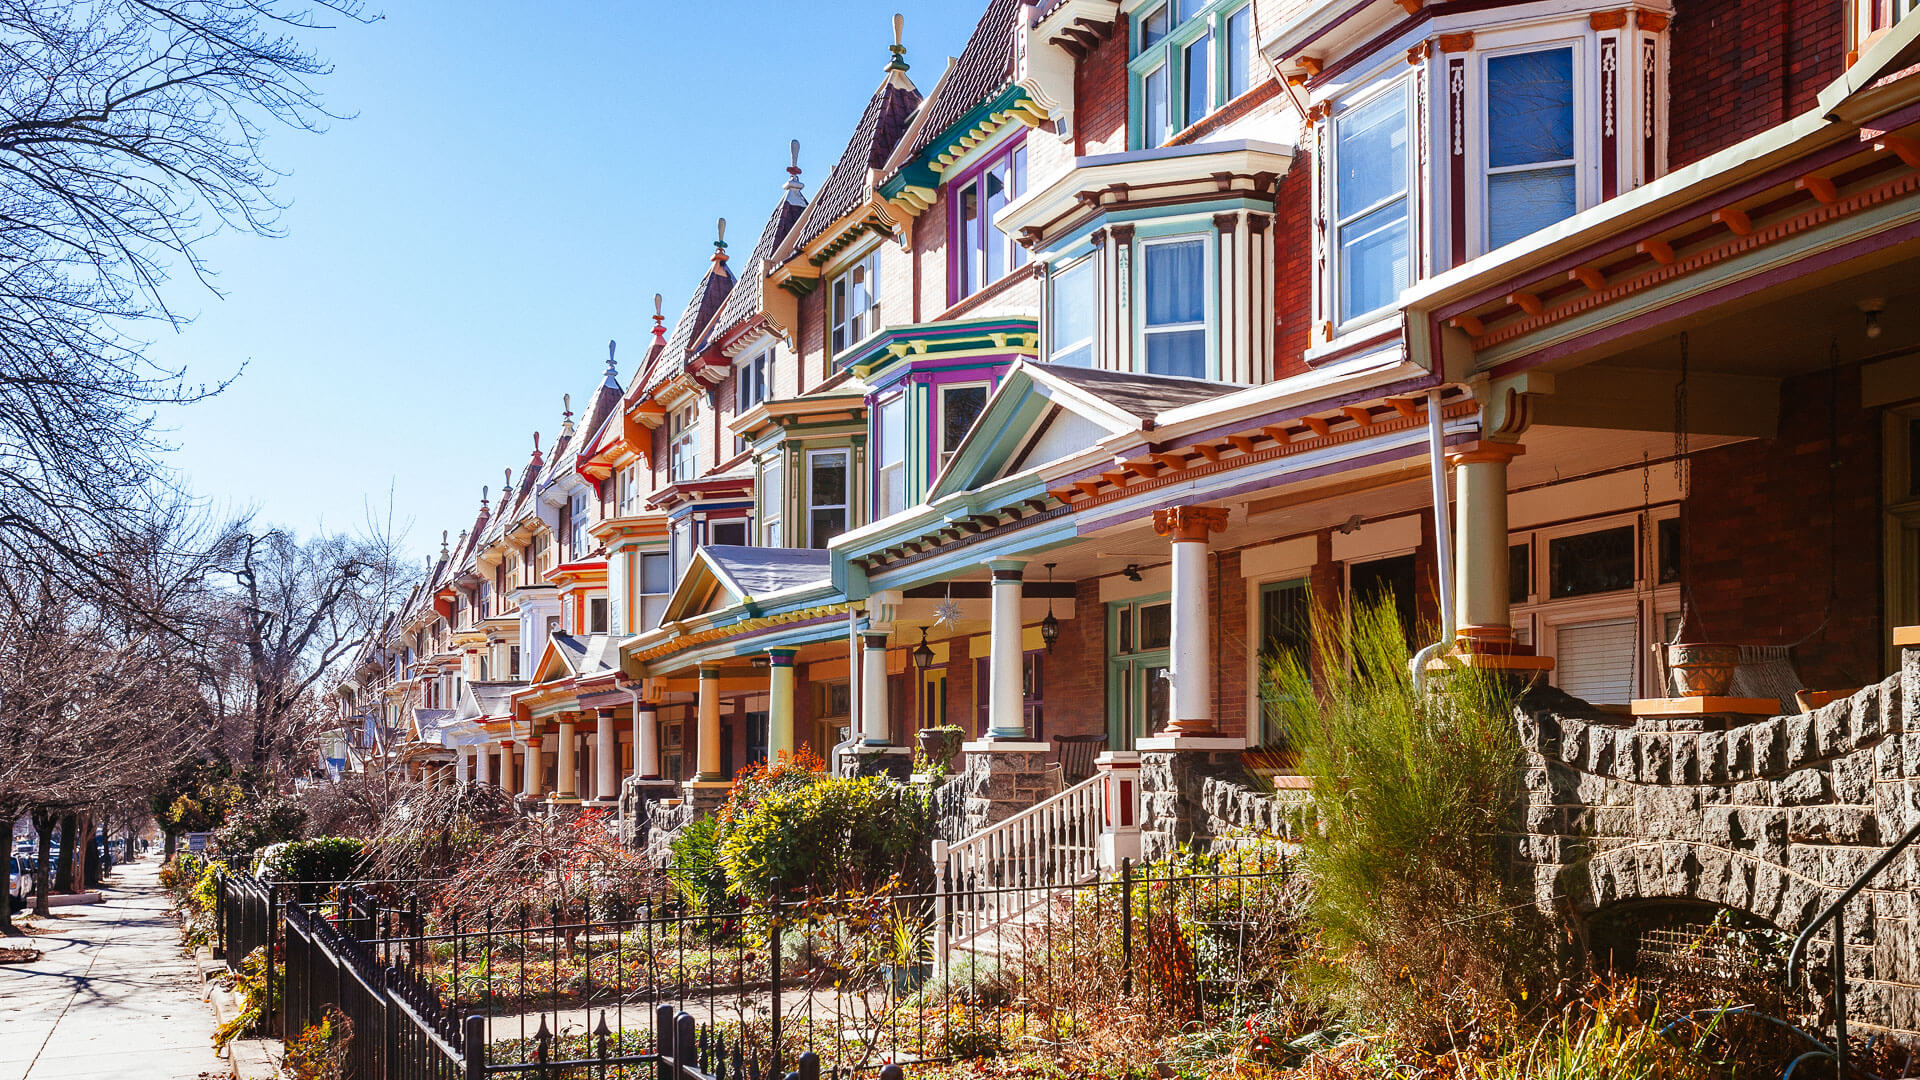 Colourful row homes in Charles Village in Baltimore Maryland